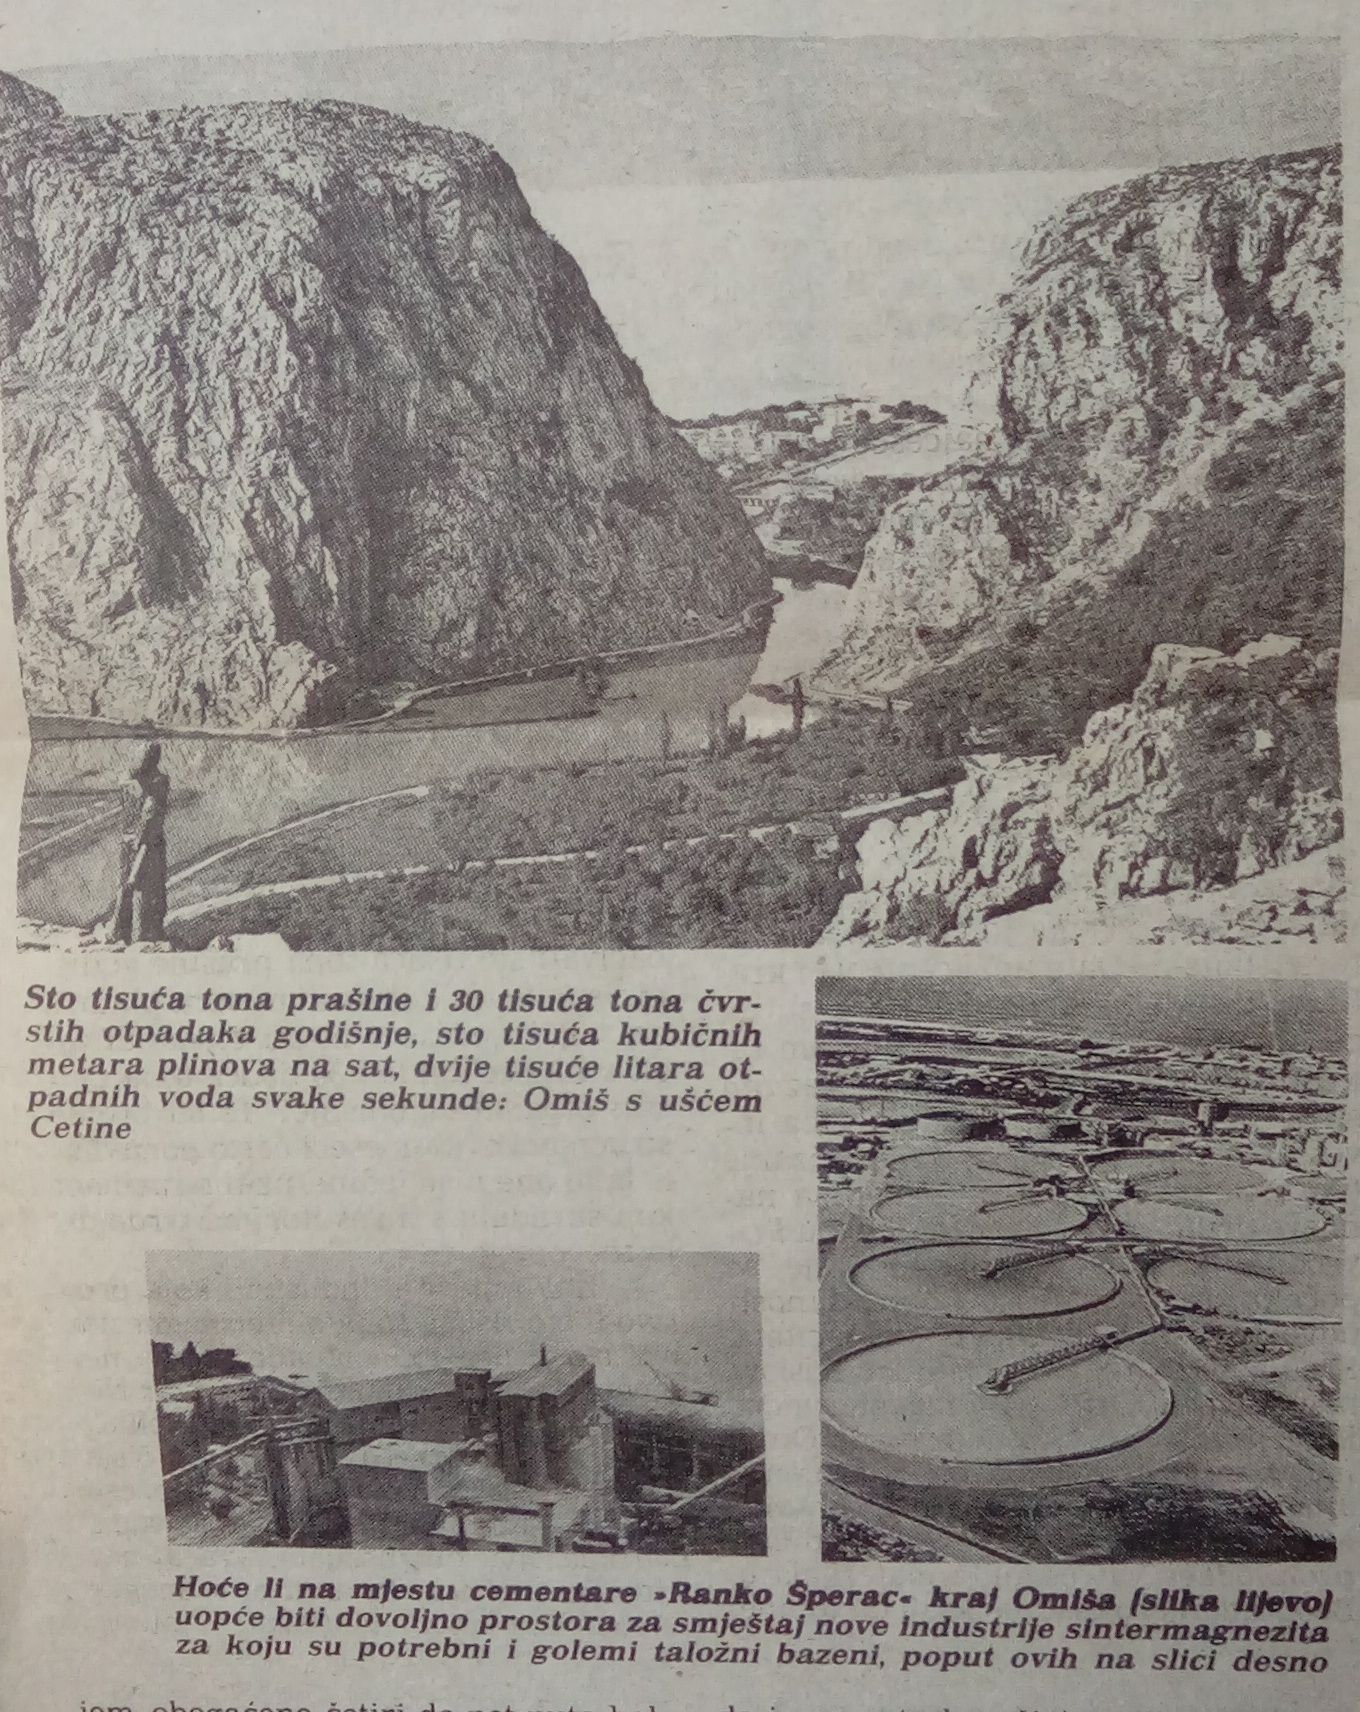 Illustration from a newspaper article on the planned construction of a sintered magnesia factory in Omiš, published in Vjesnik on 24 February 1979 (2018-05-23).